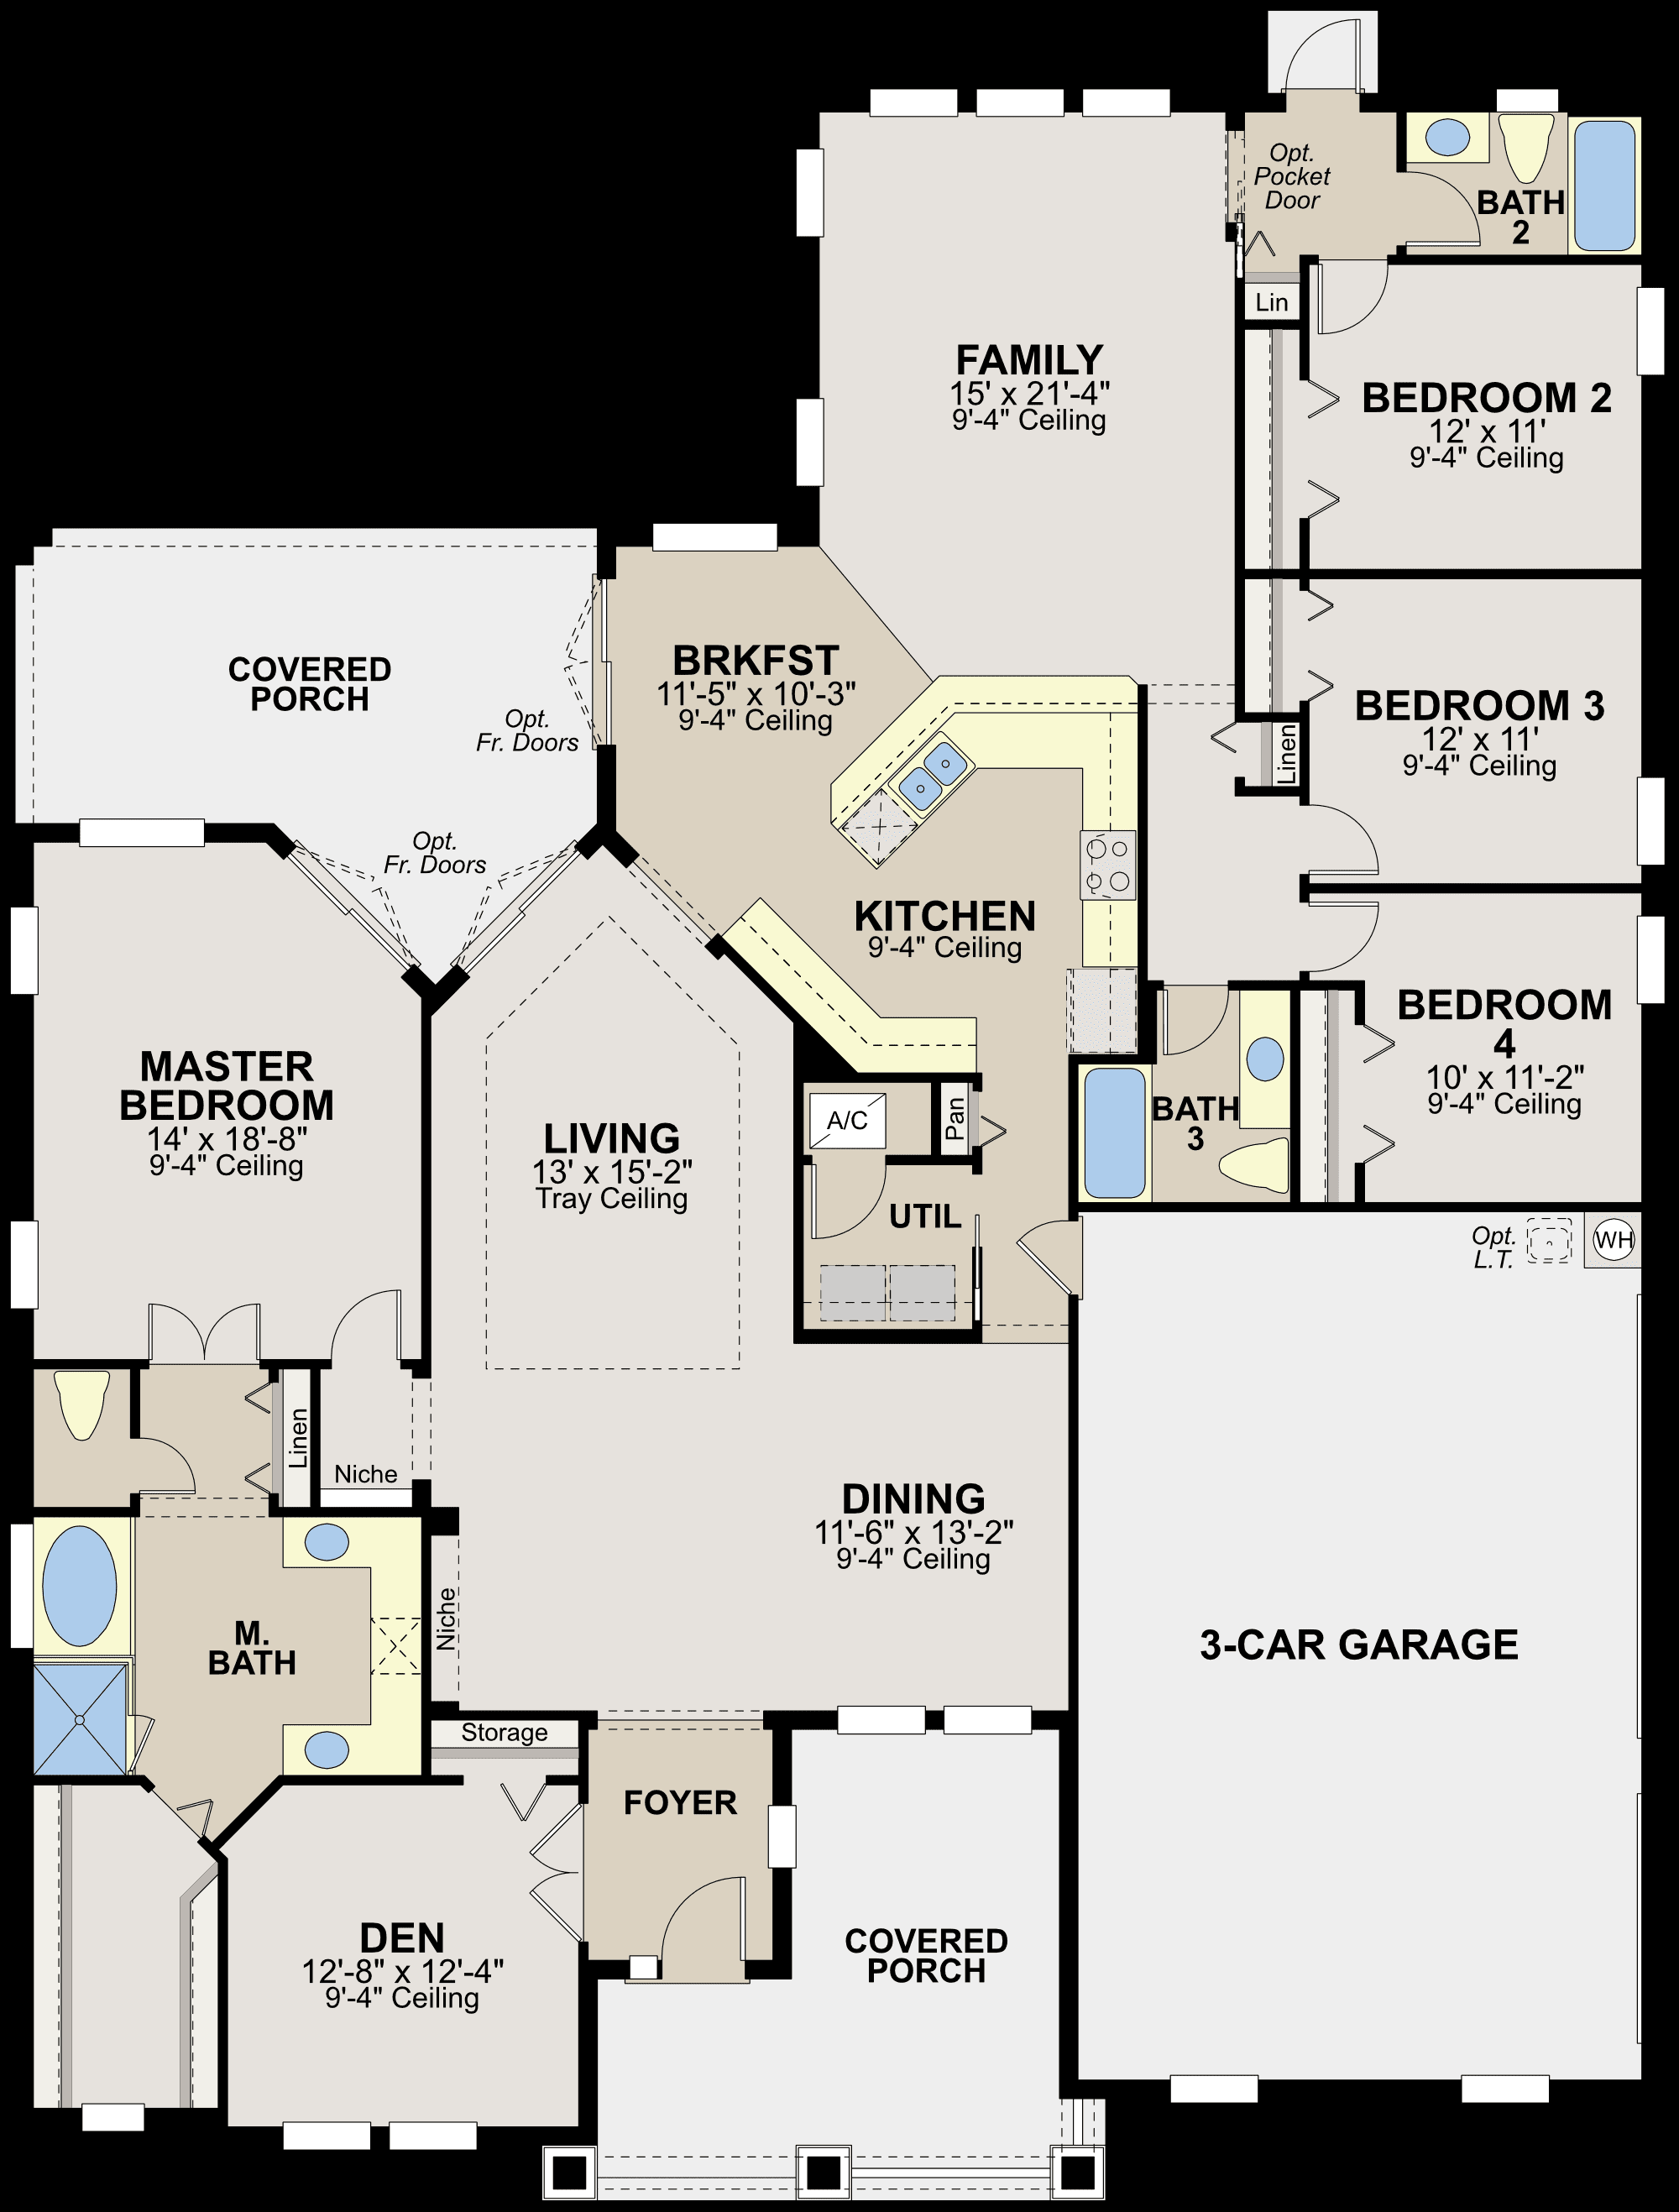 Ryland homes stockbridge floor plan home design and style for Ryland home plans